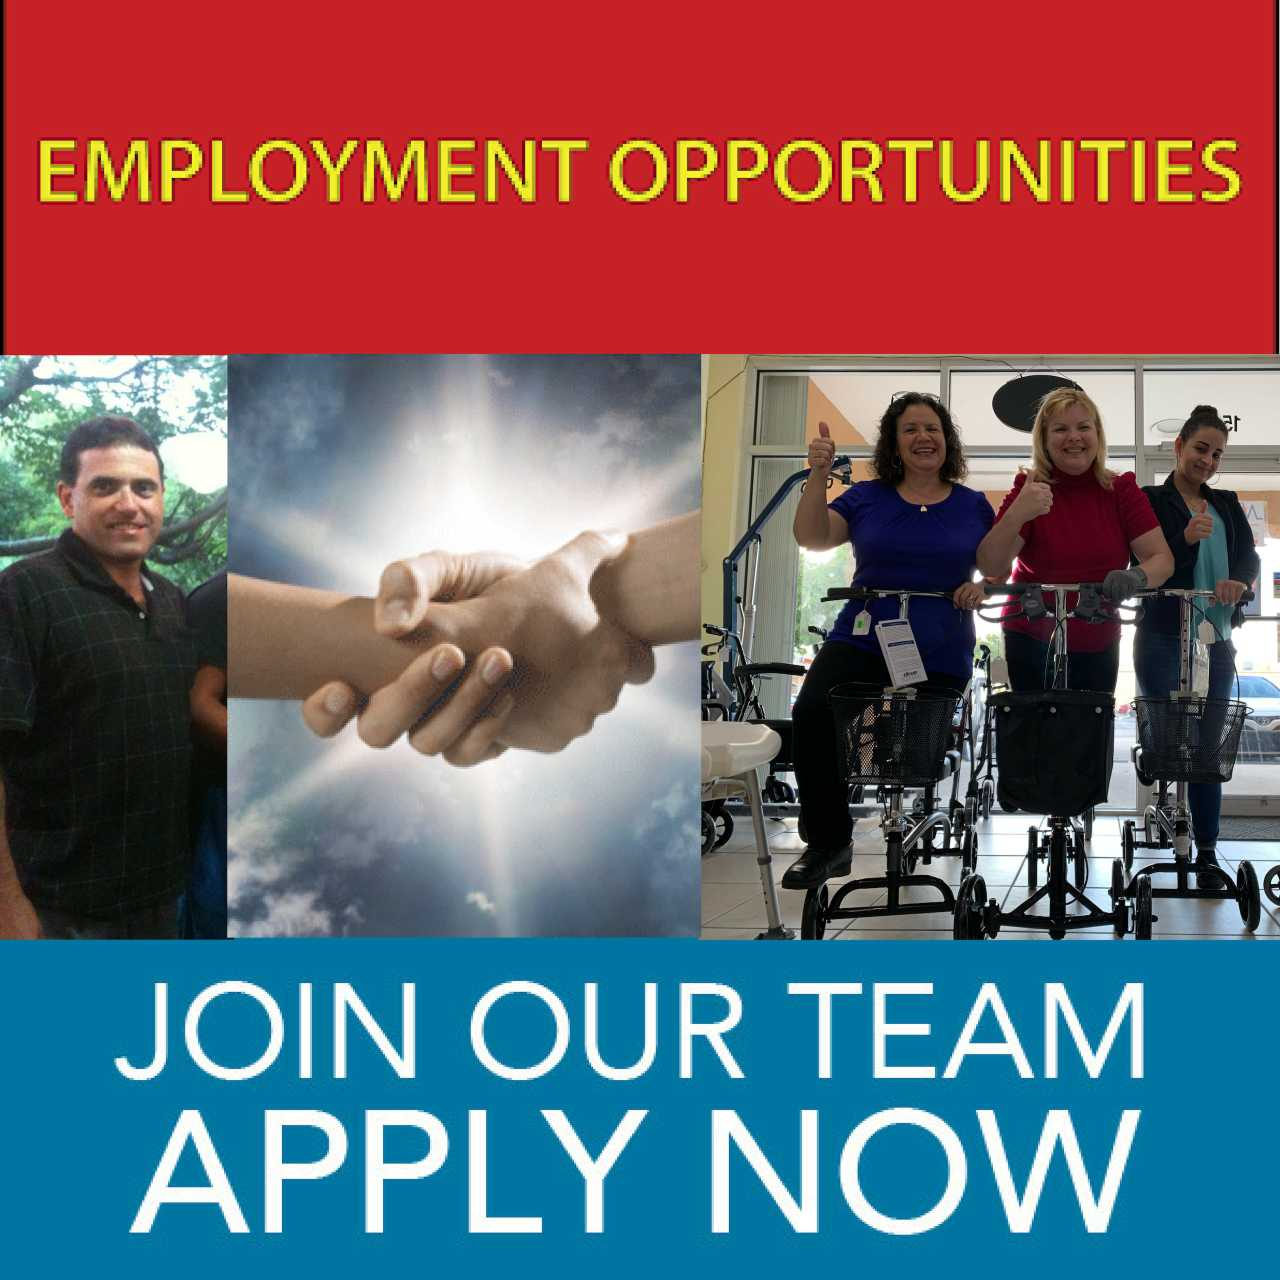 Employment, Join Out Team, Apply Now